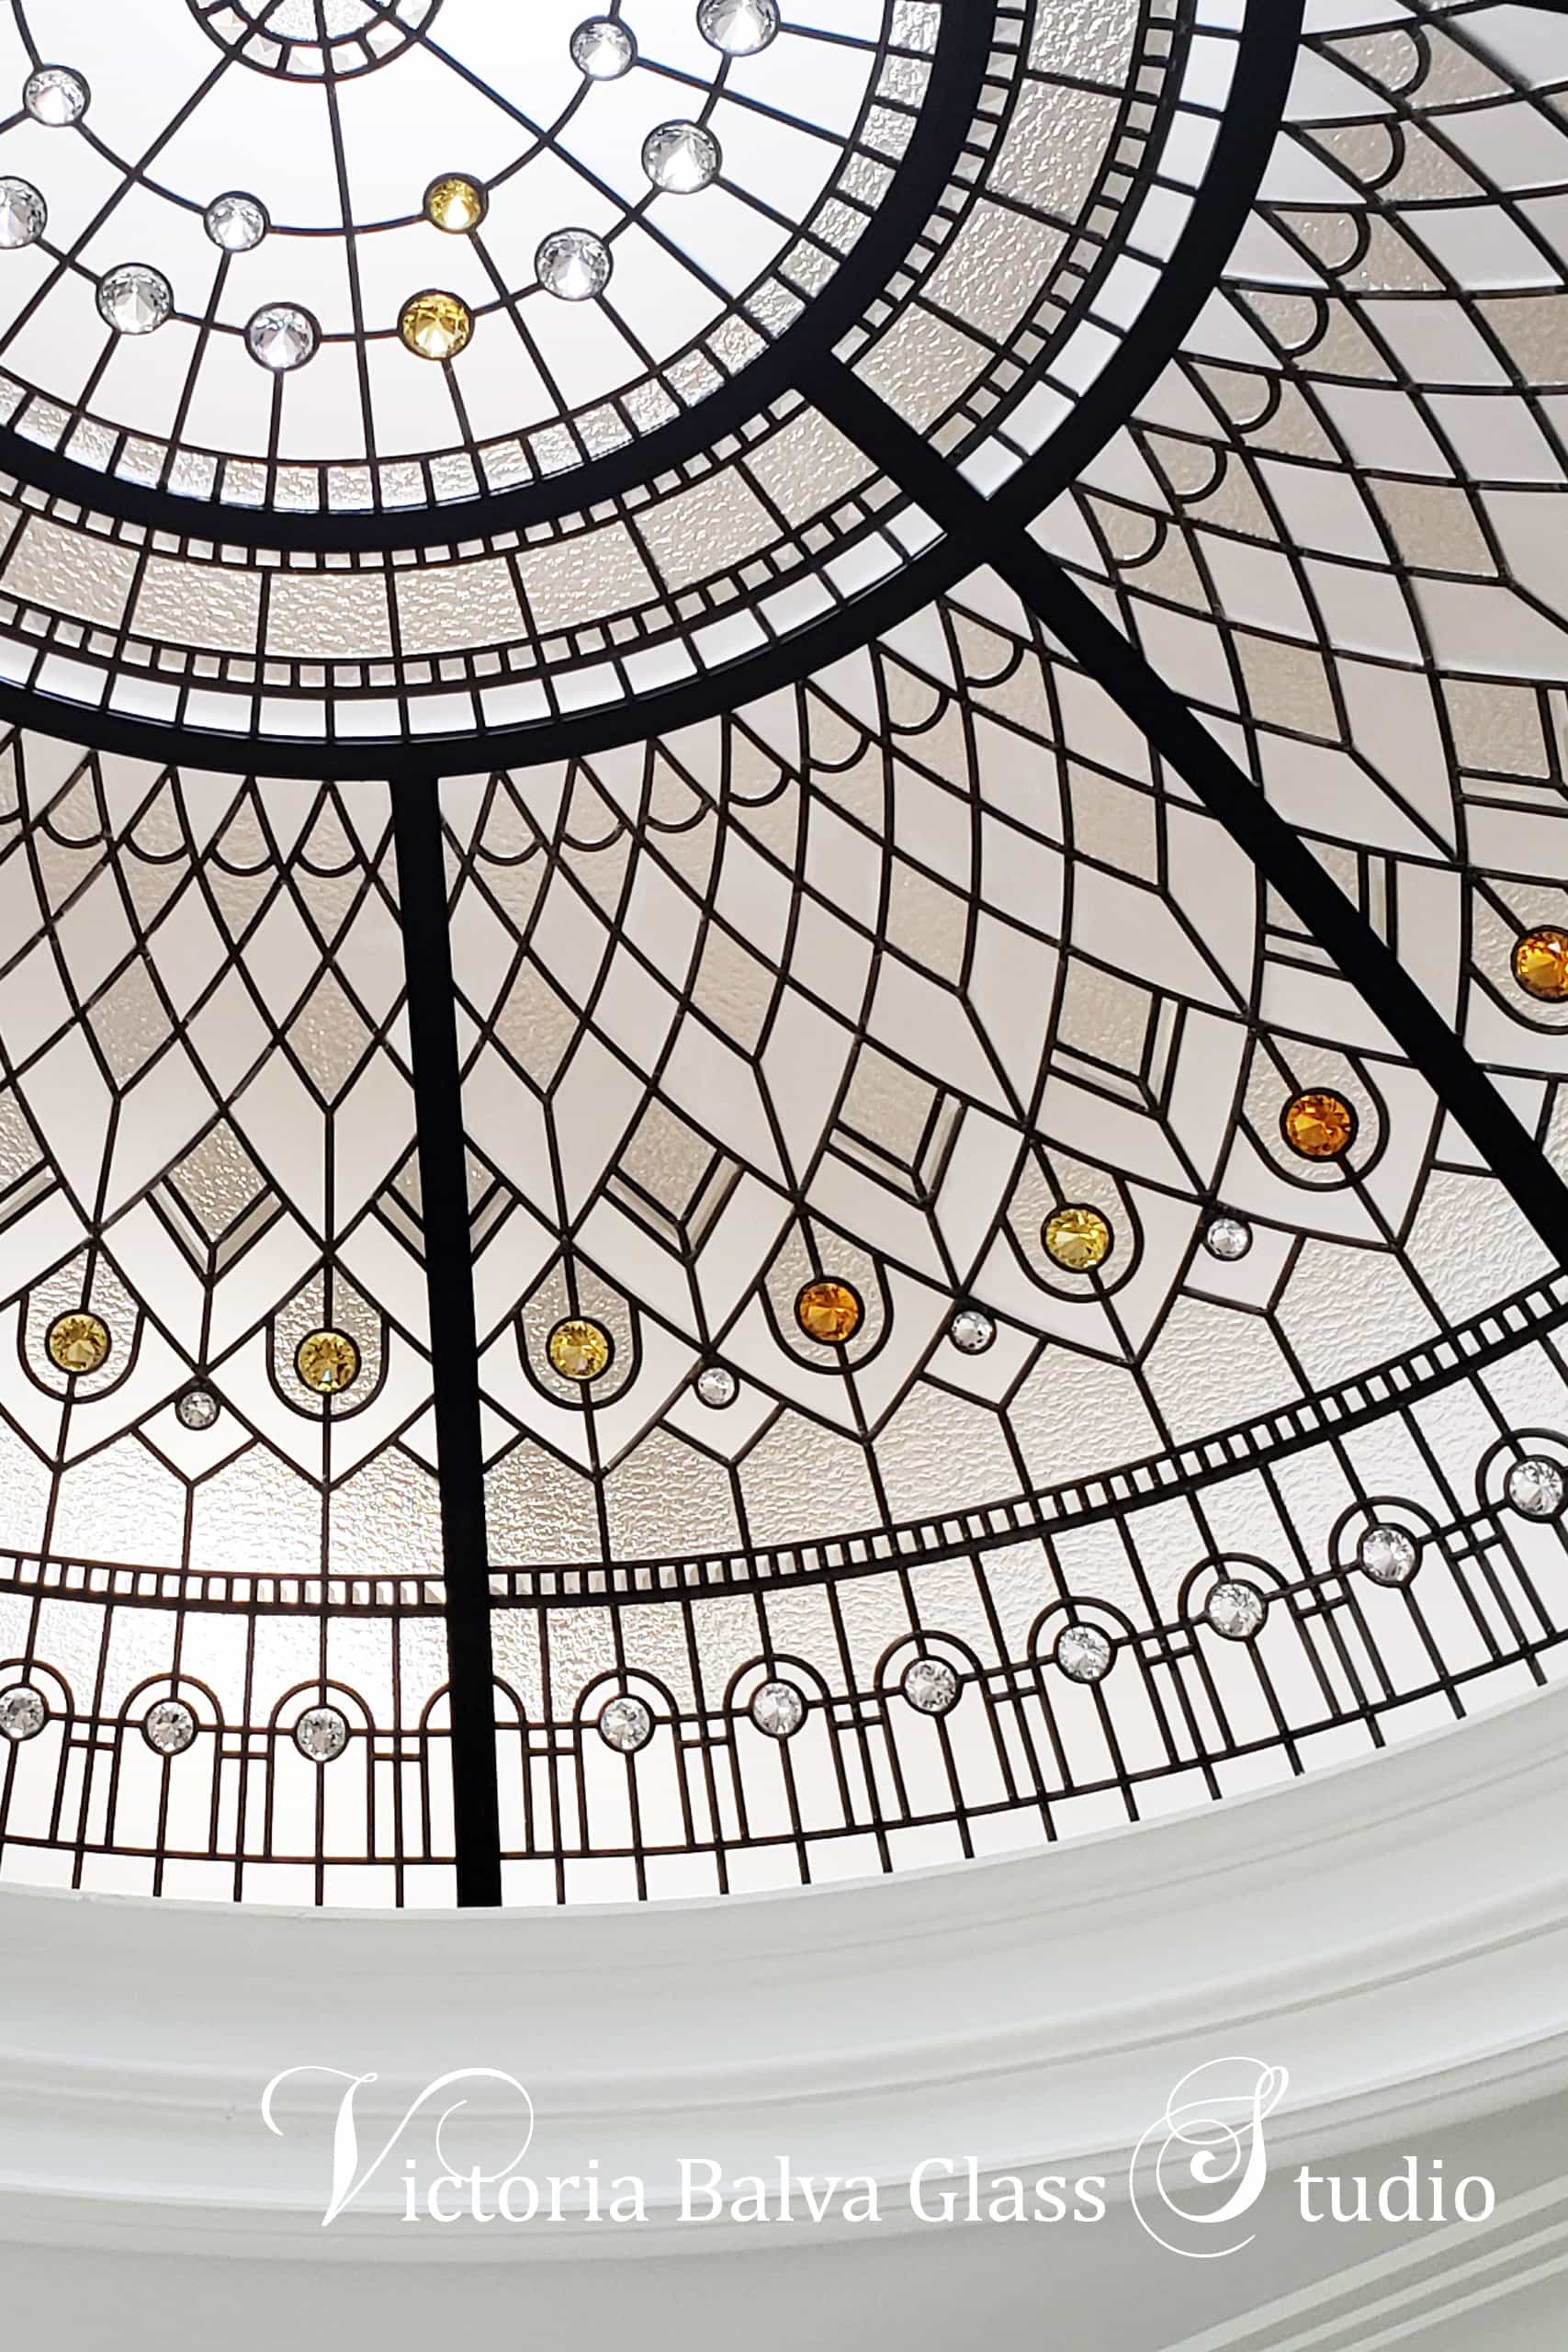 The beautiful stained glass dome classically inspired for a hallway of luxury built custom residence in Brampton with clear pale amber and yellow jewels